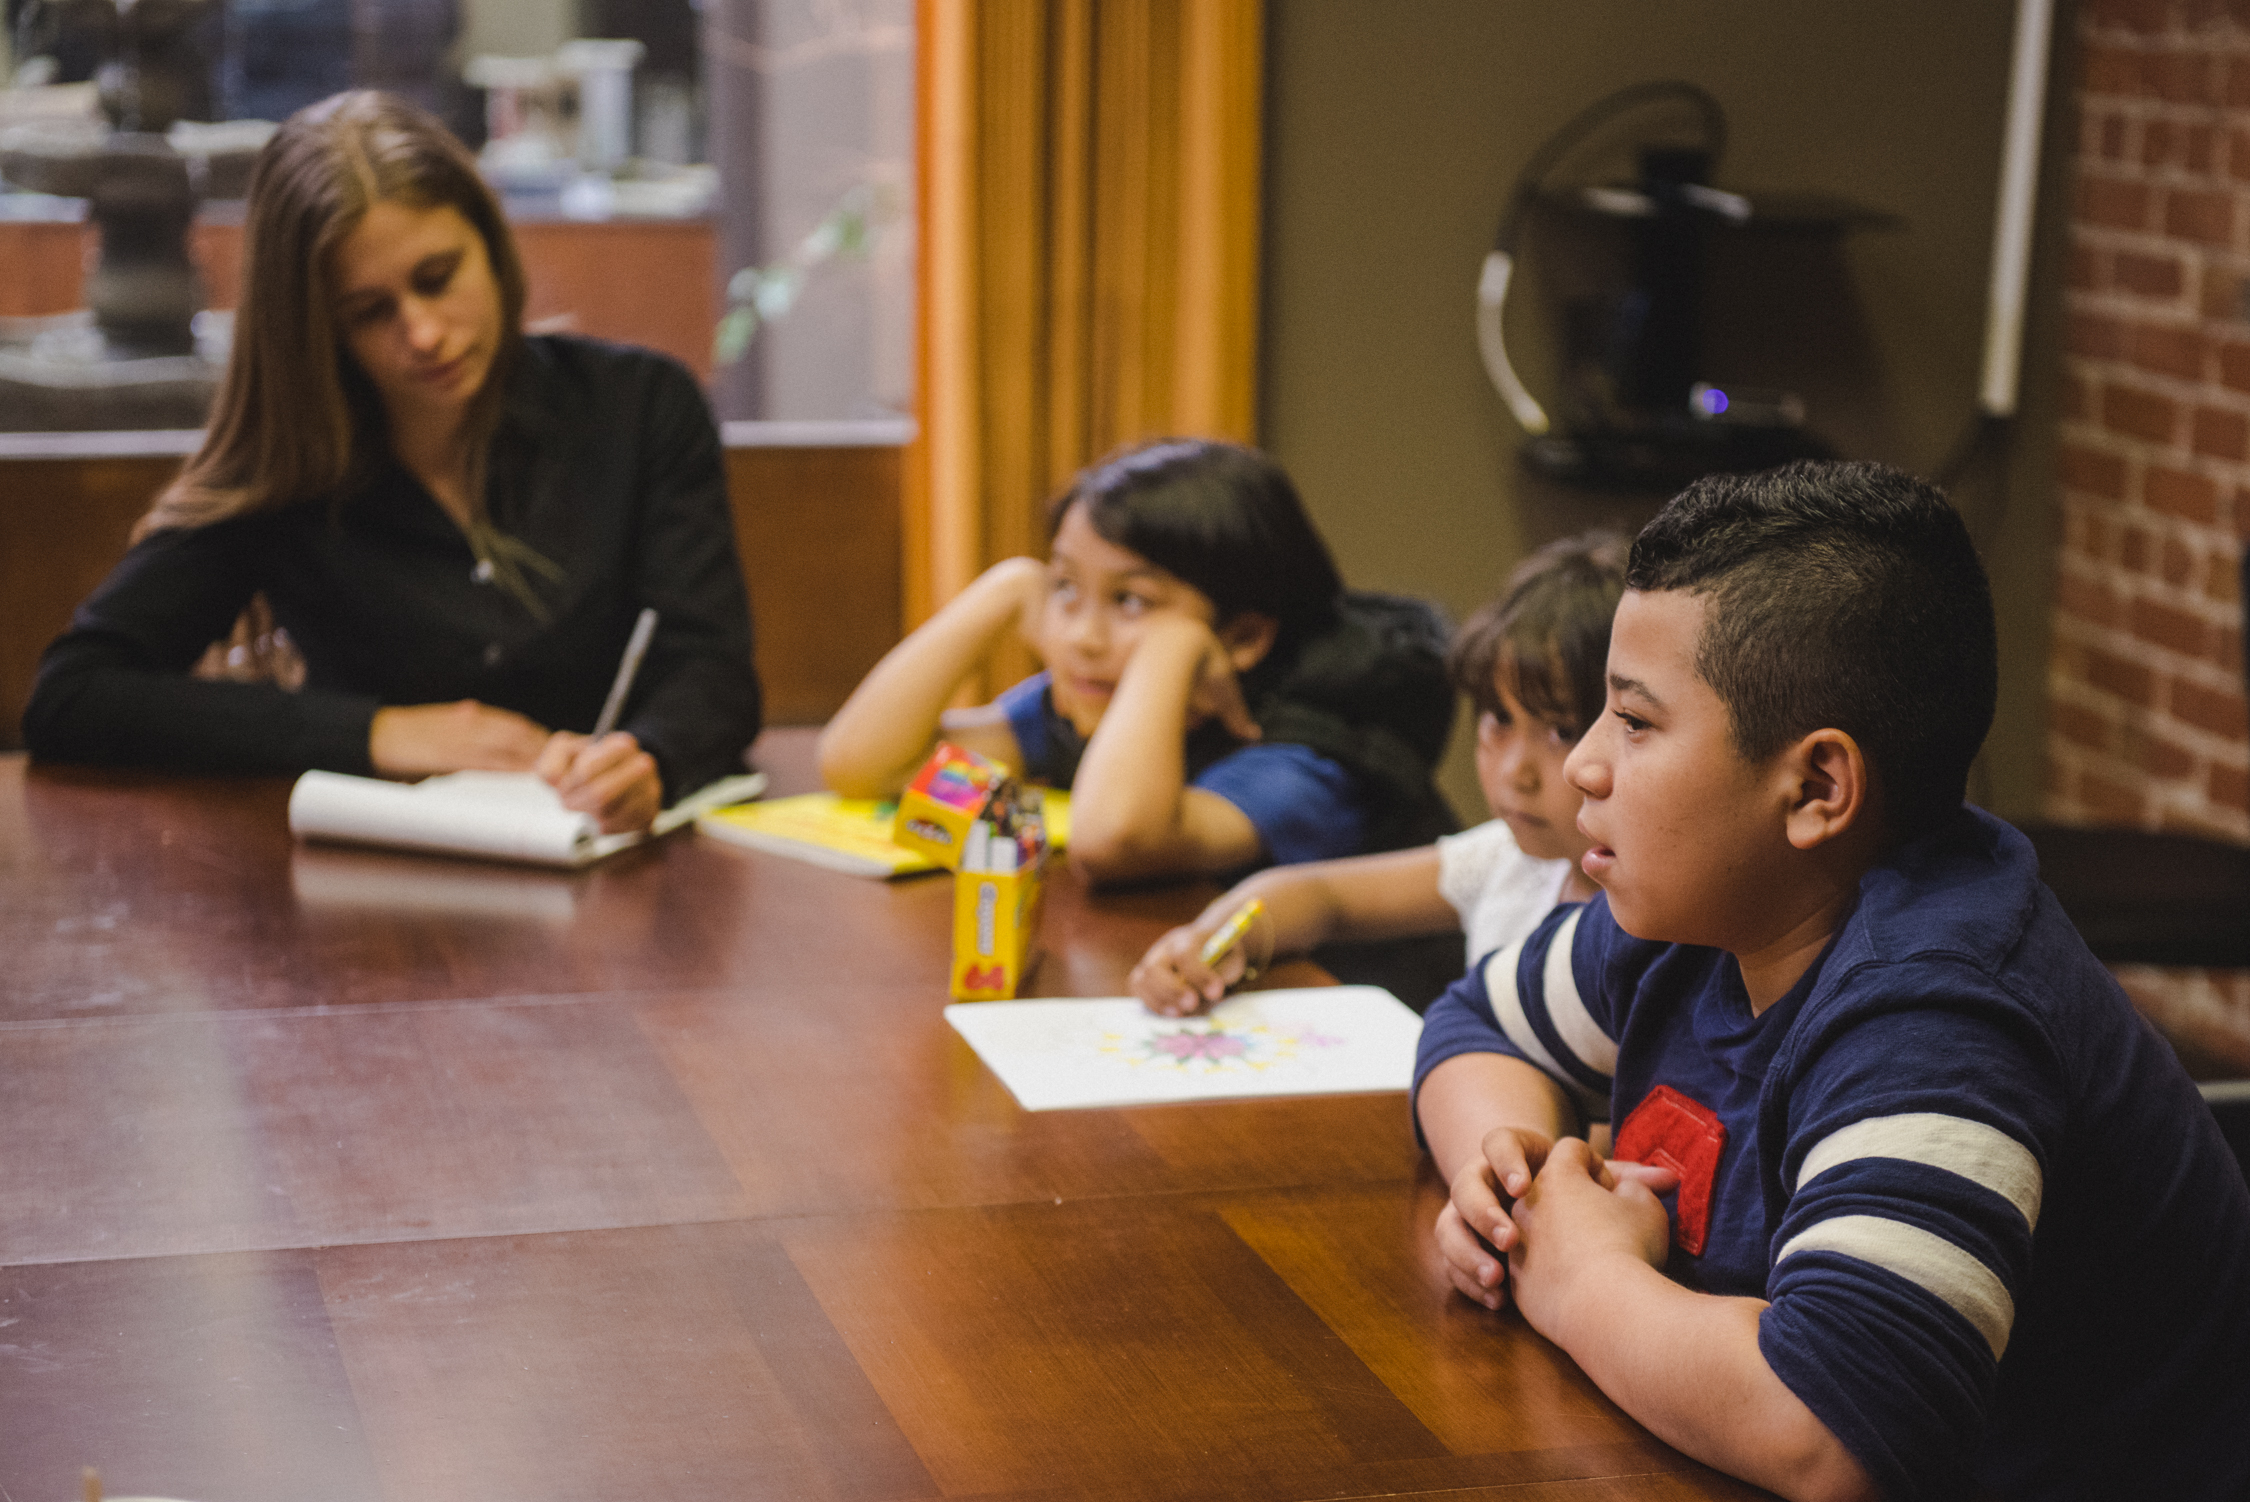 About - SJC provides vital legal services to around 1500 families each year. Read more to learn more about our work.